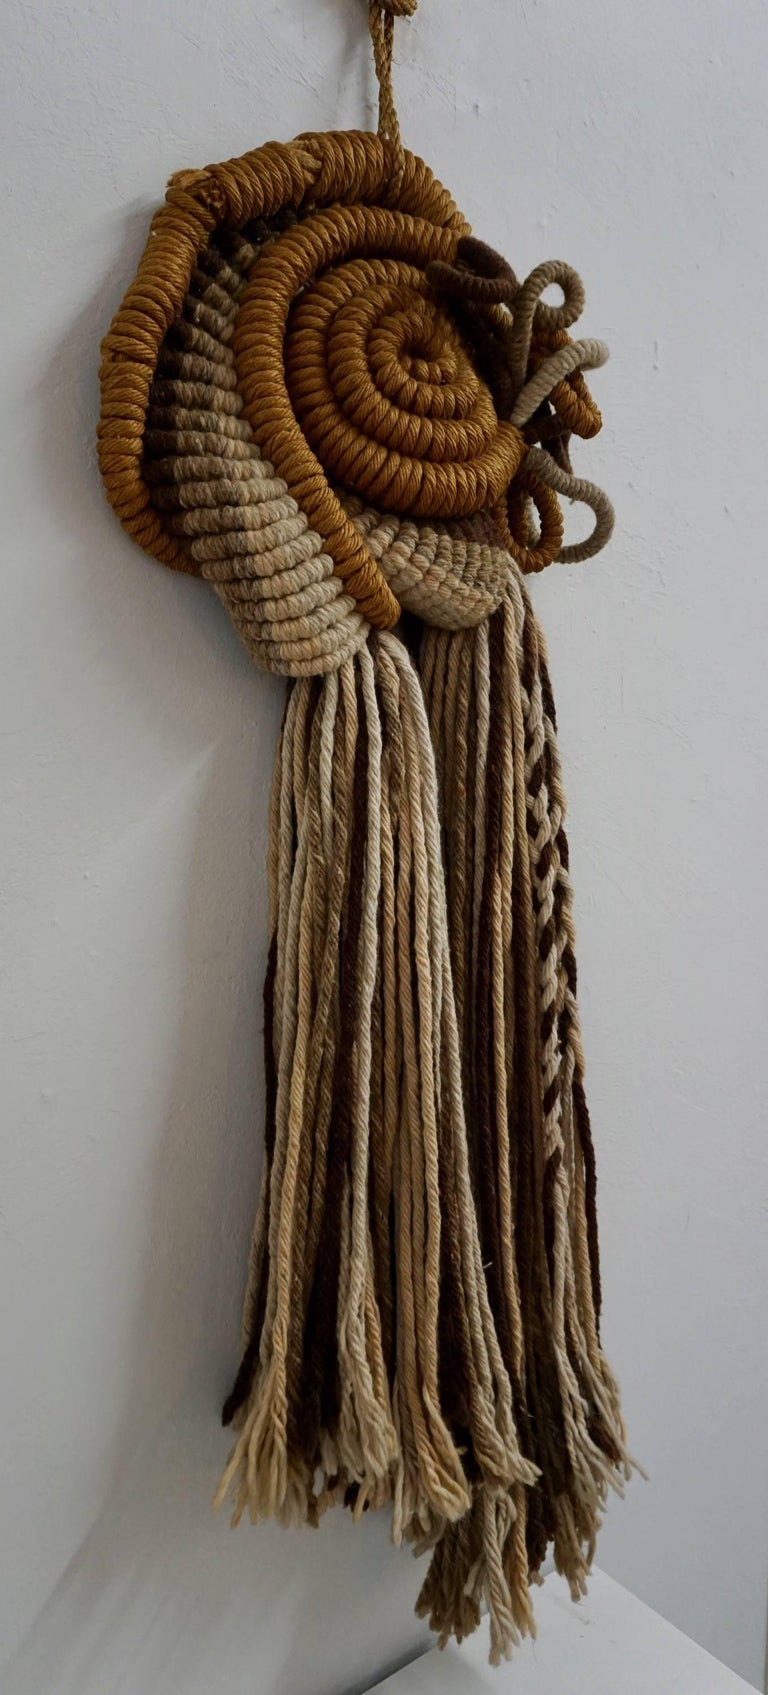 Unusual combination of rope, yarn and twine creating a very interesting wall hanging.